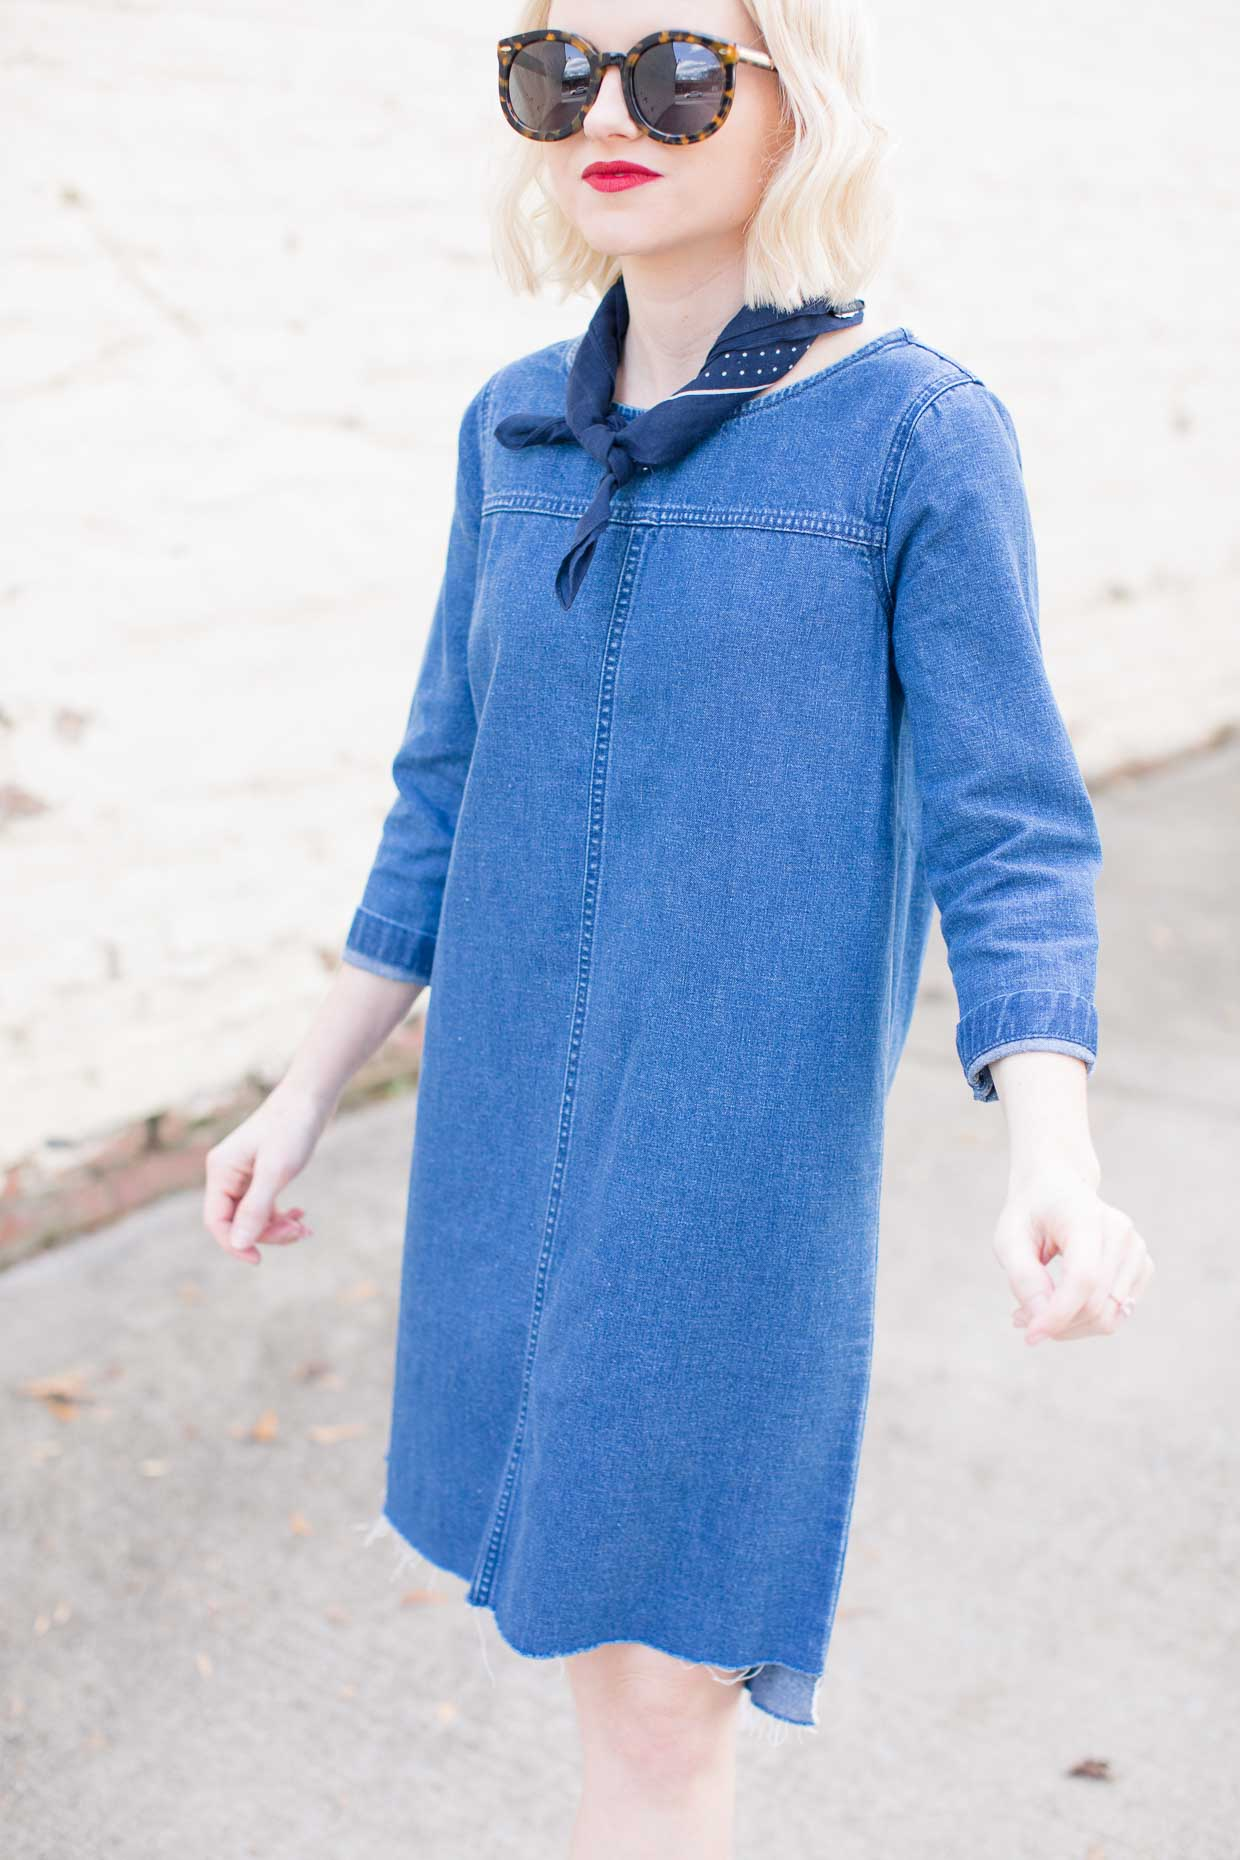 Madewell Dark Wash Denim Shift Dress - Poor Little It Girl